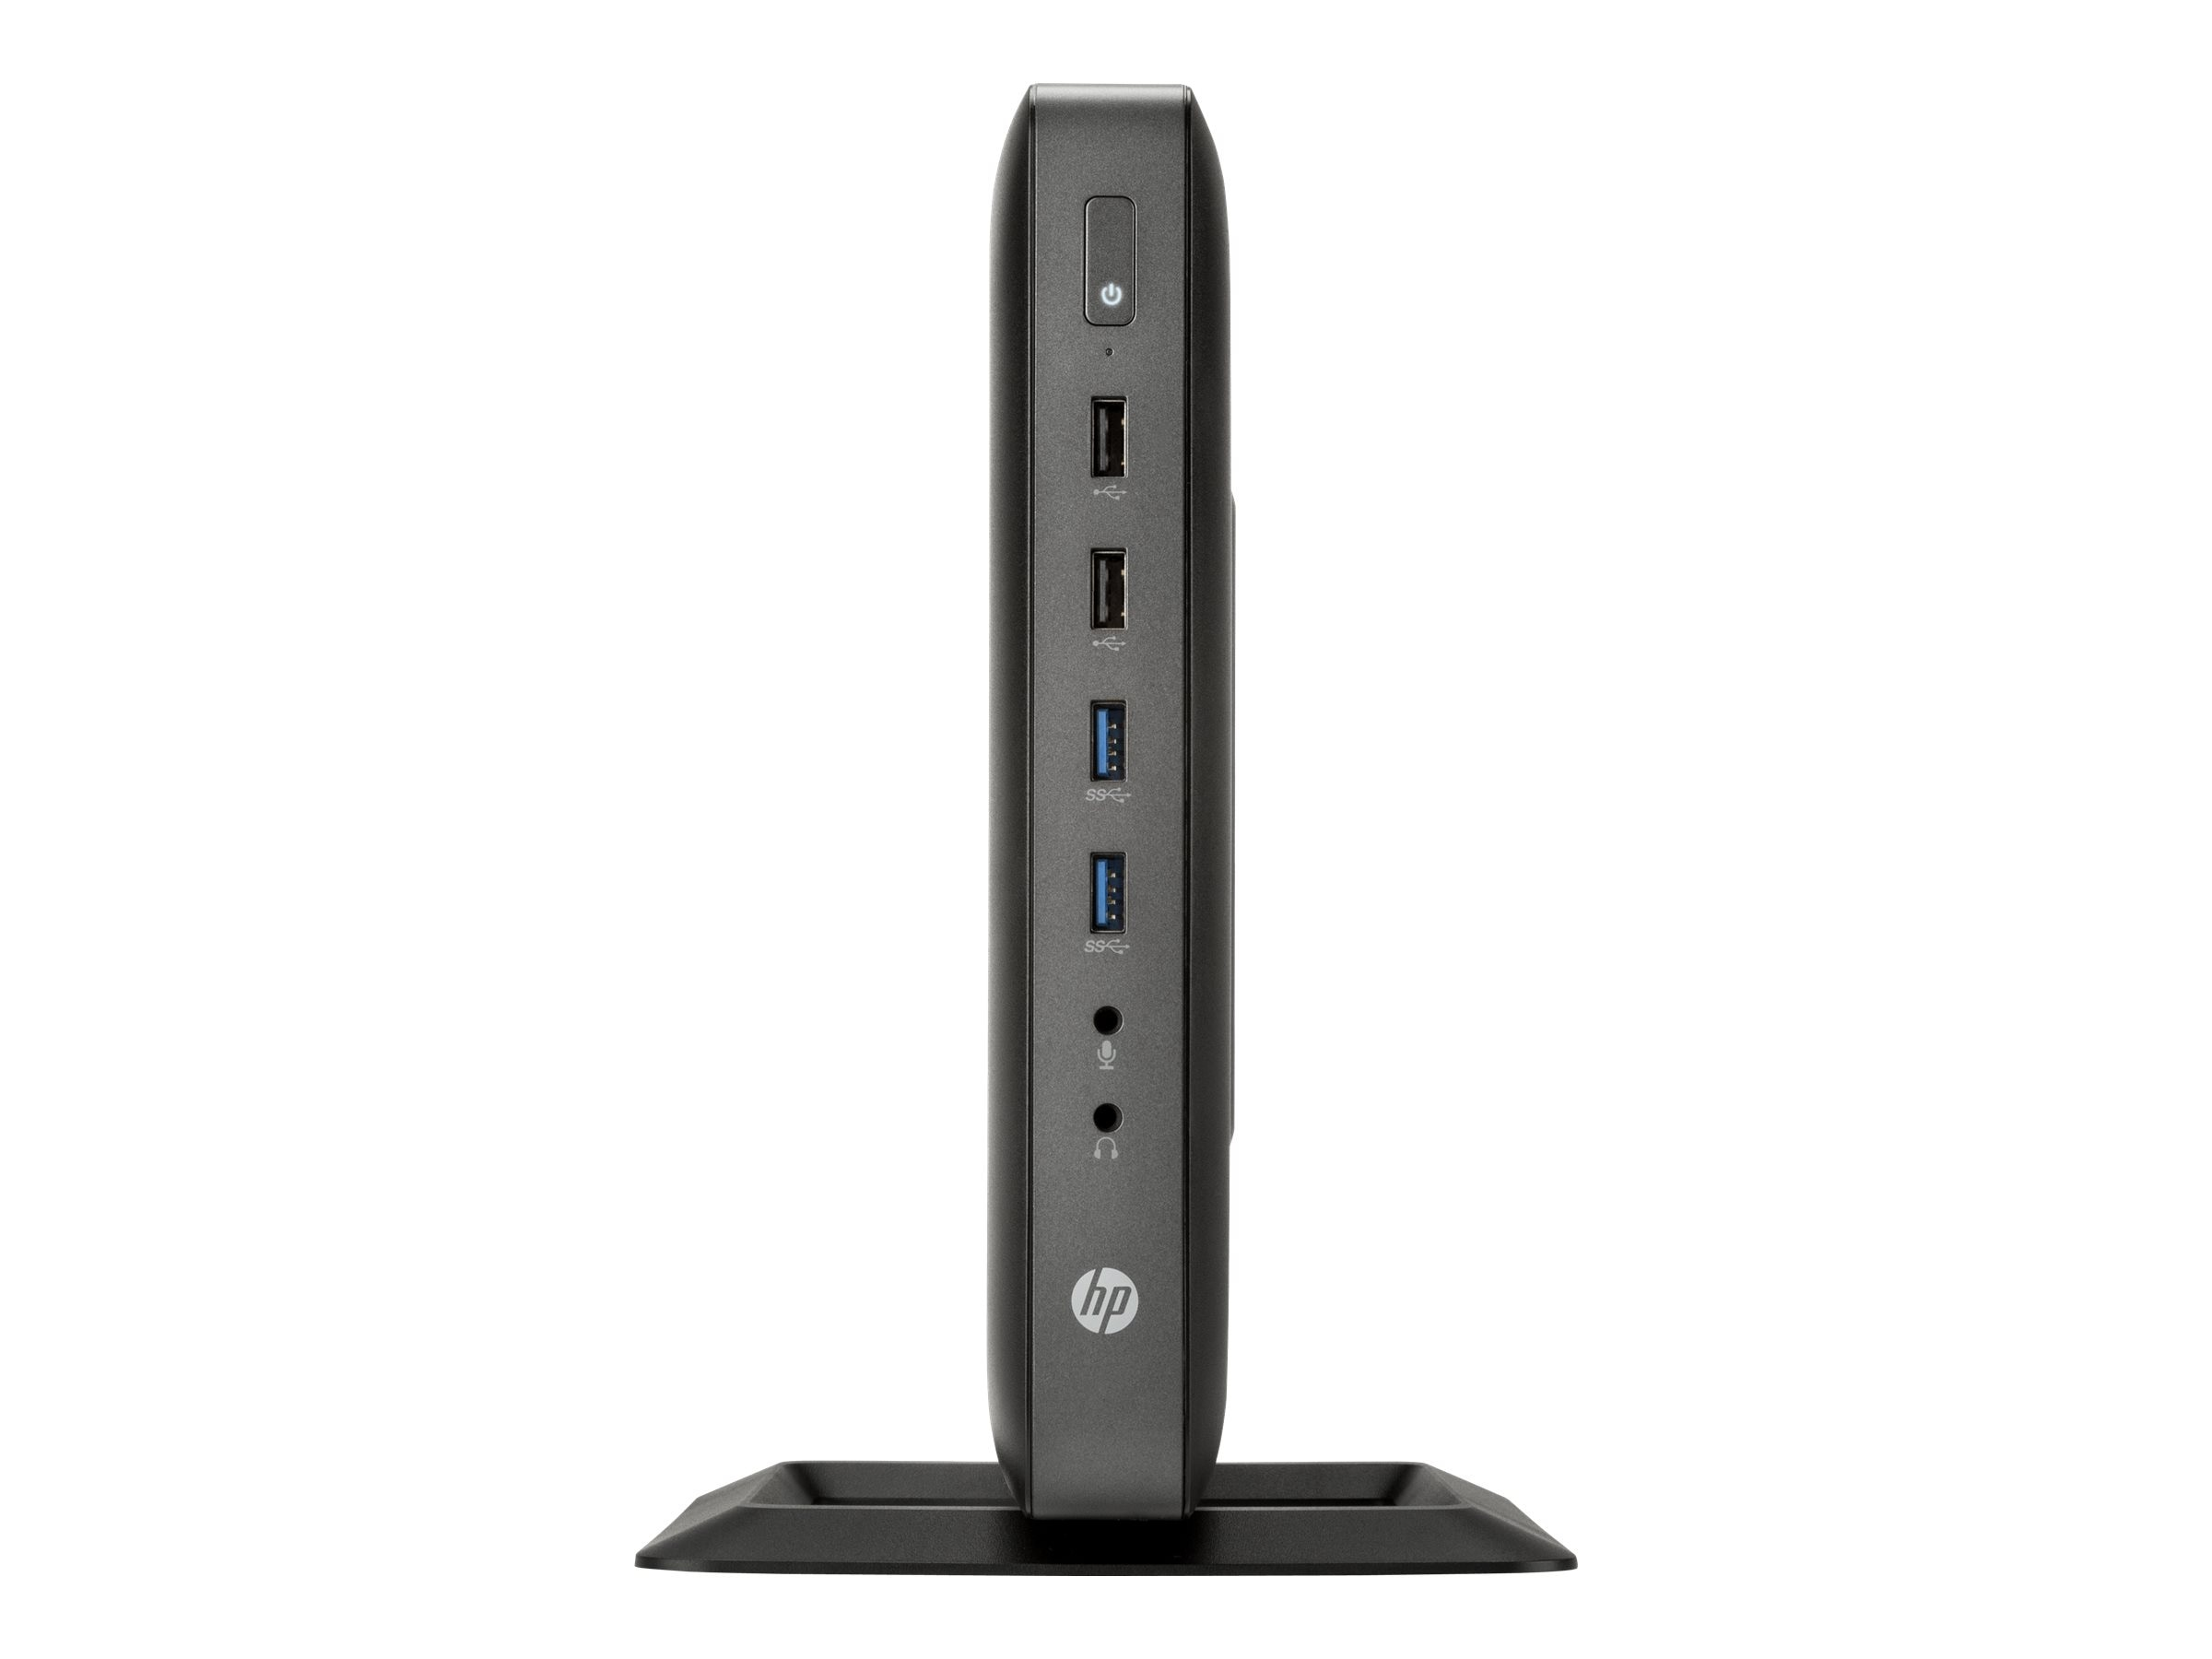 HP t620 Flexible Thin Client AMD QC GX-415GA 1.5GHz 8GB 32GB Flash HD8330E W10 IoT, V2V53UA#ABA